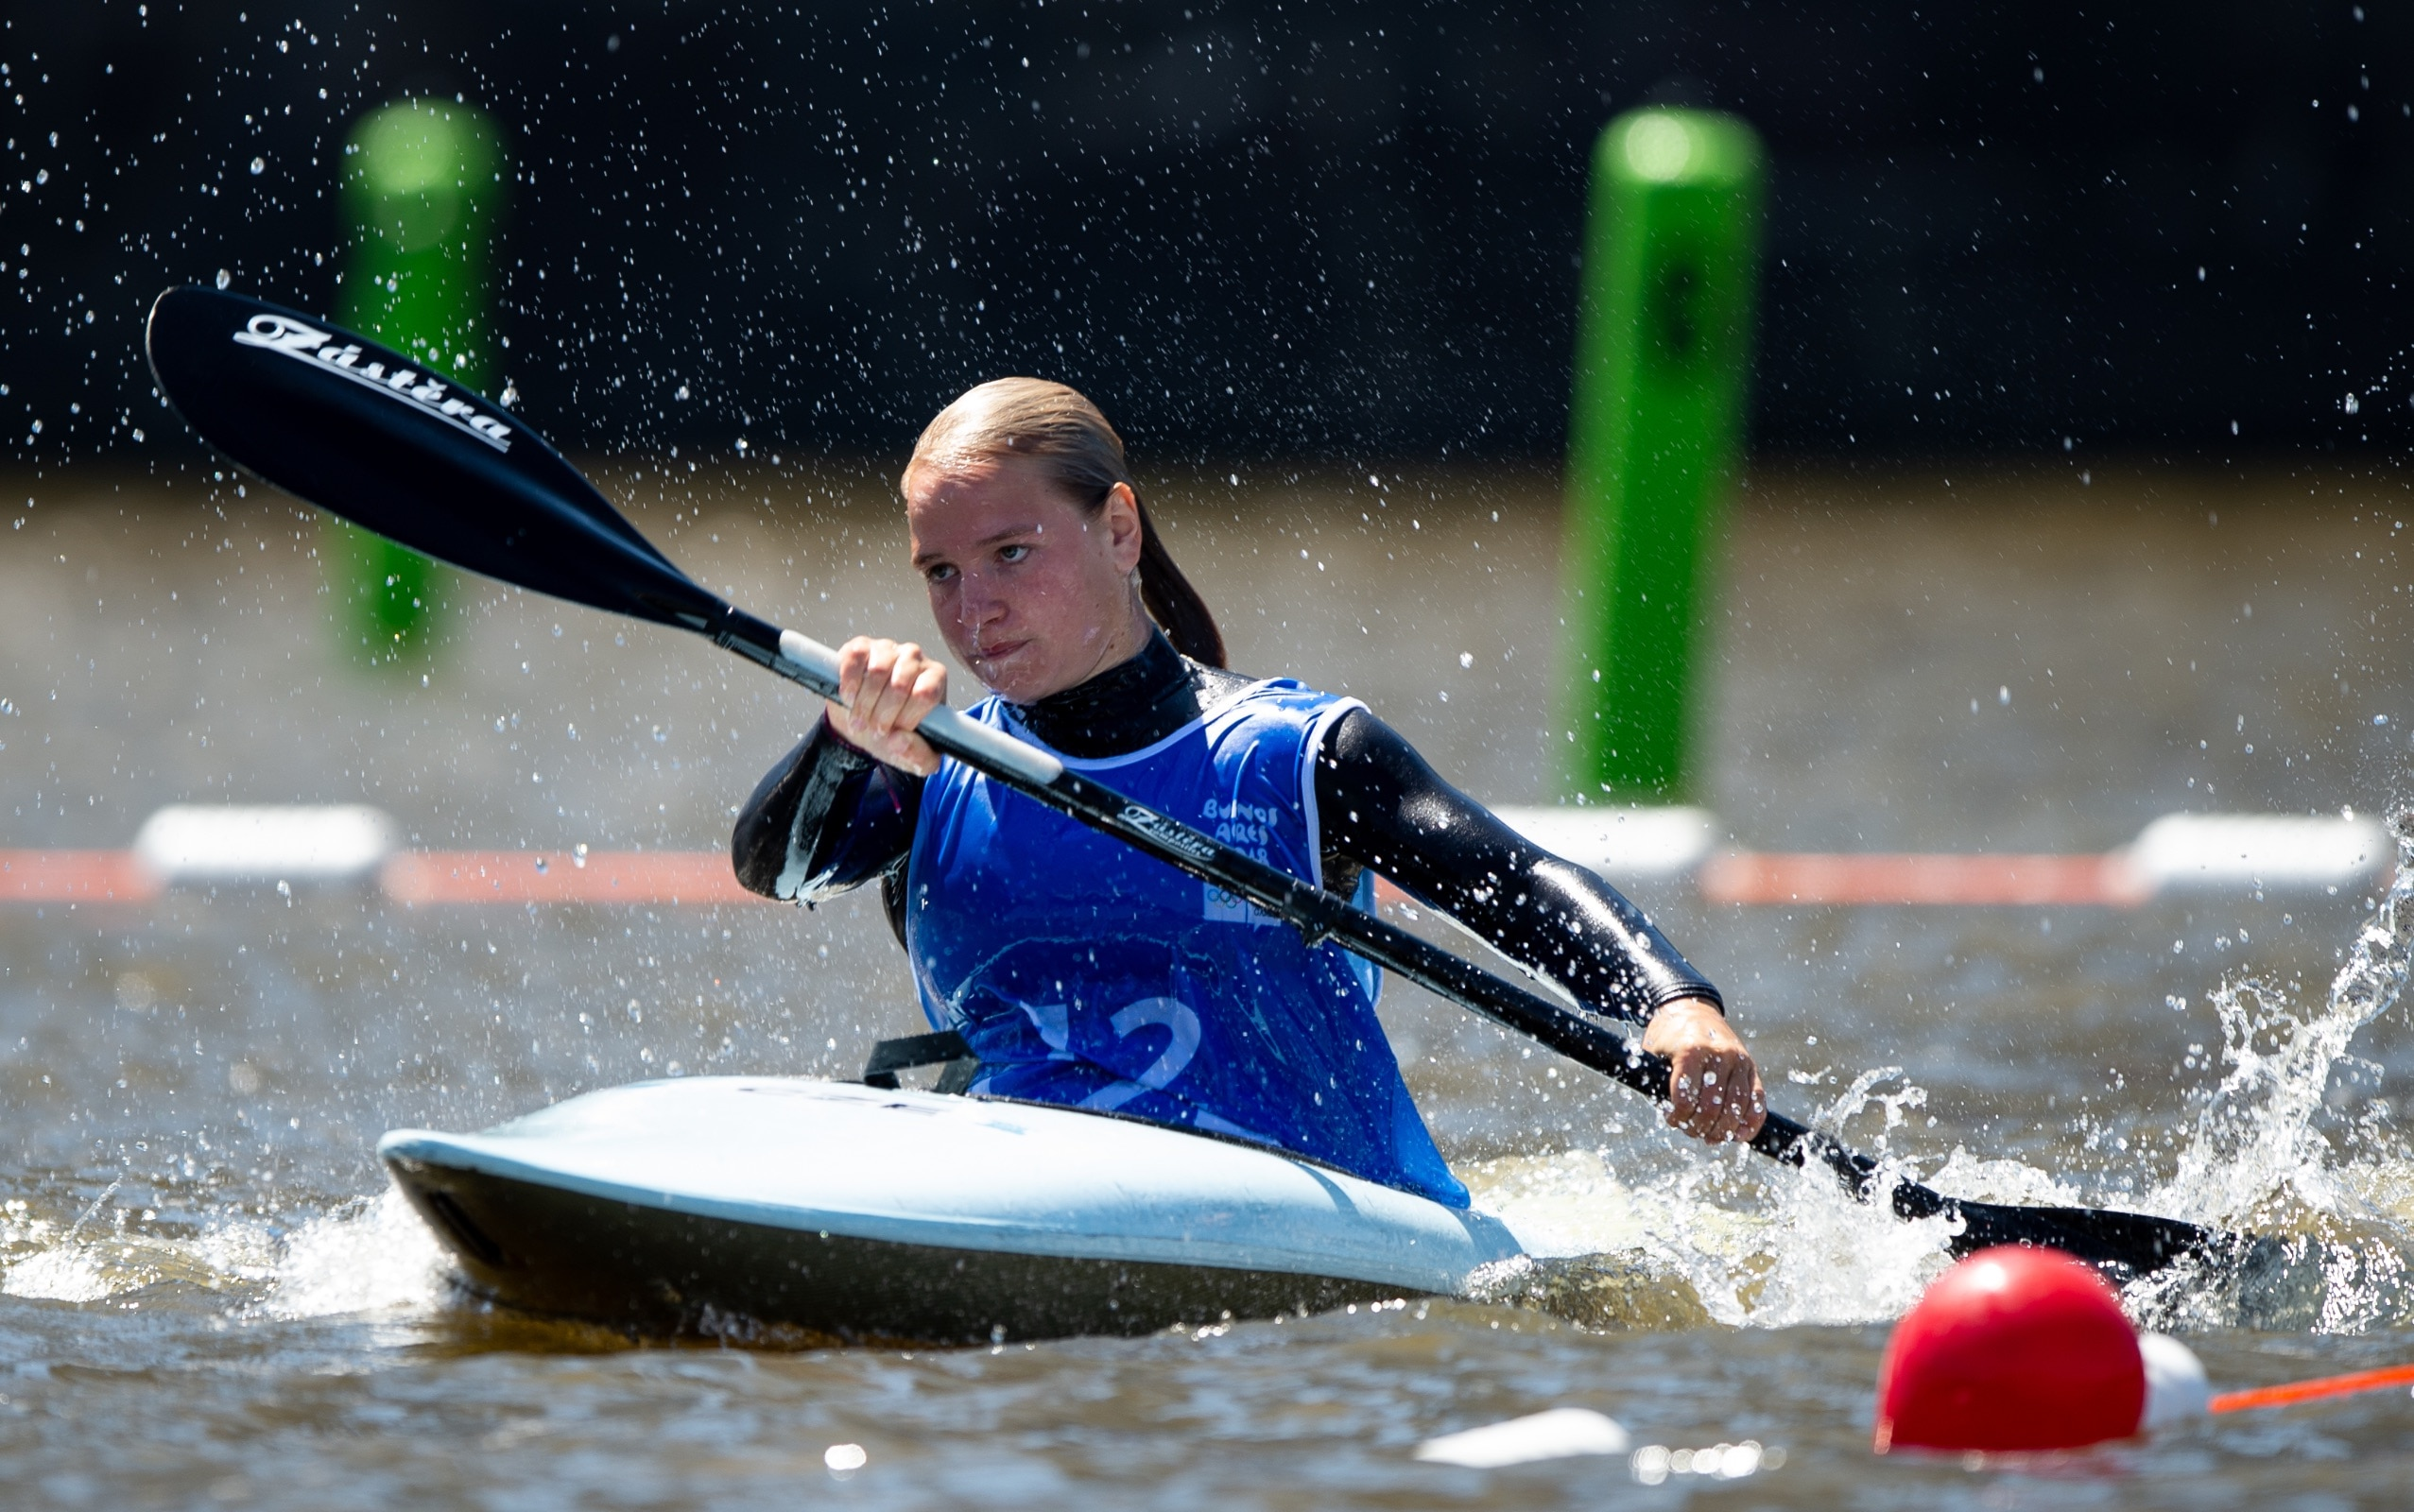 Buenos Aires 2018 - Canoe - K1 - Obstacle Slalom - Women